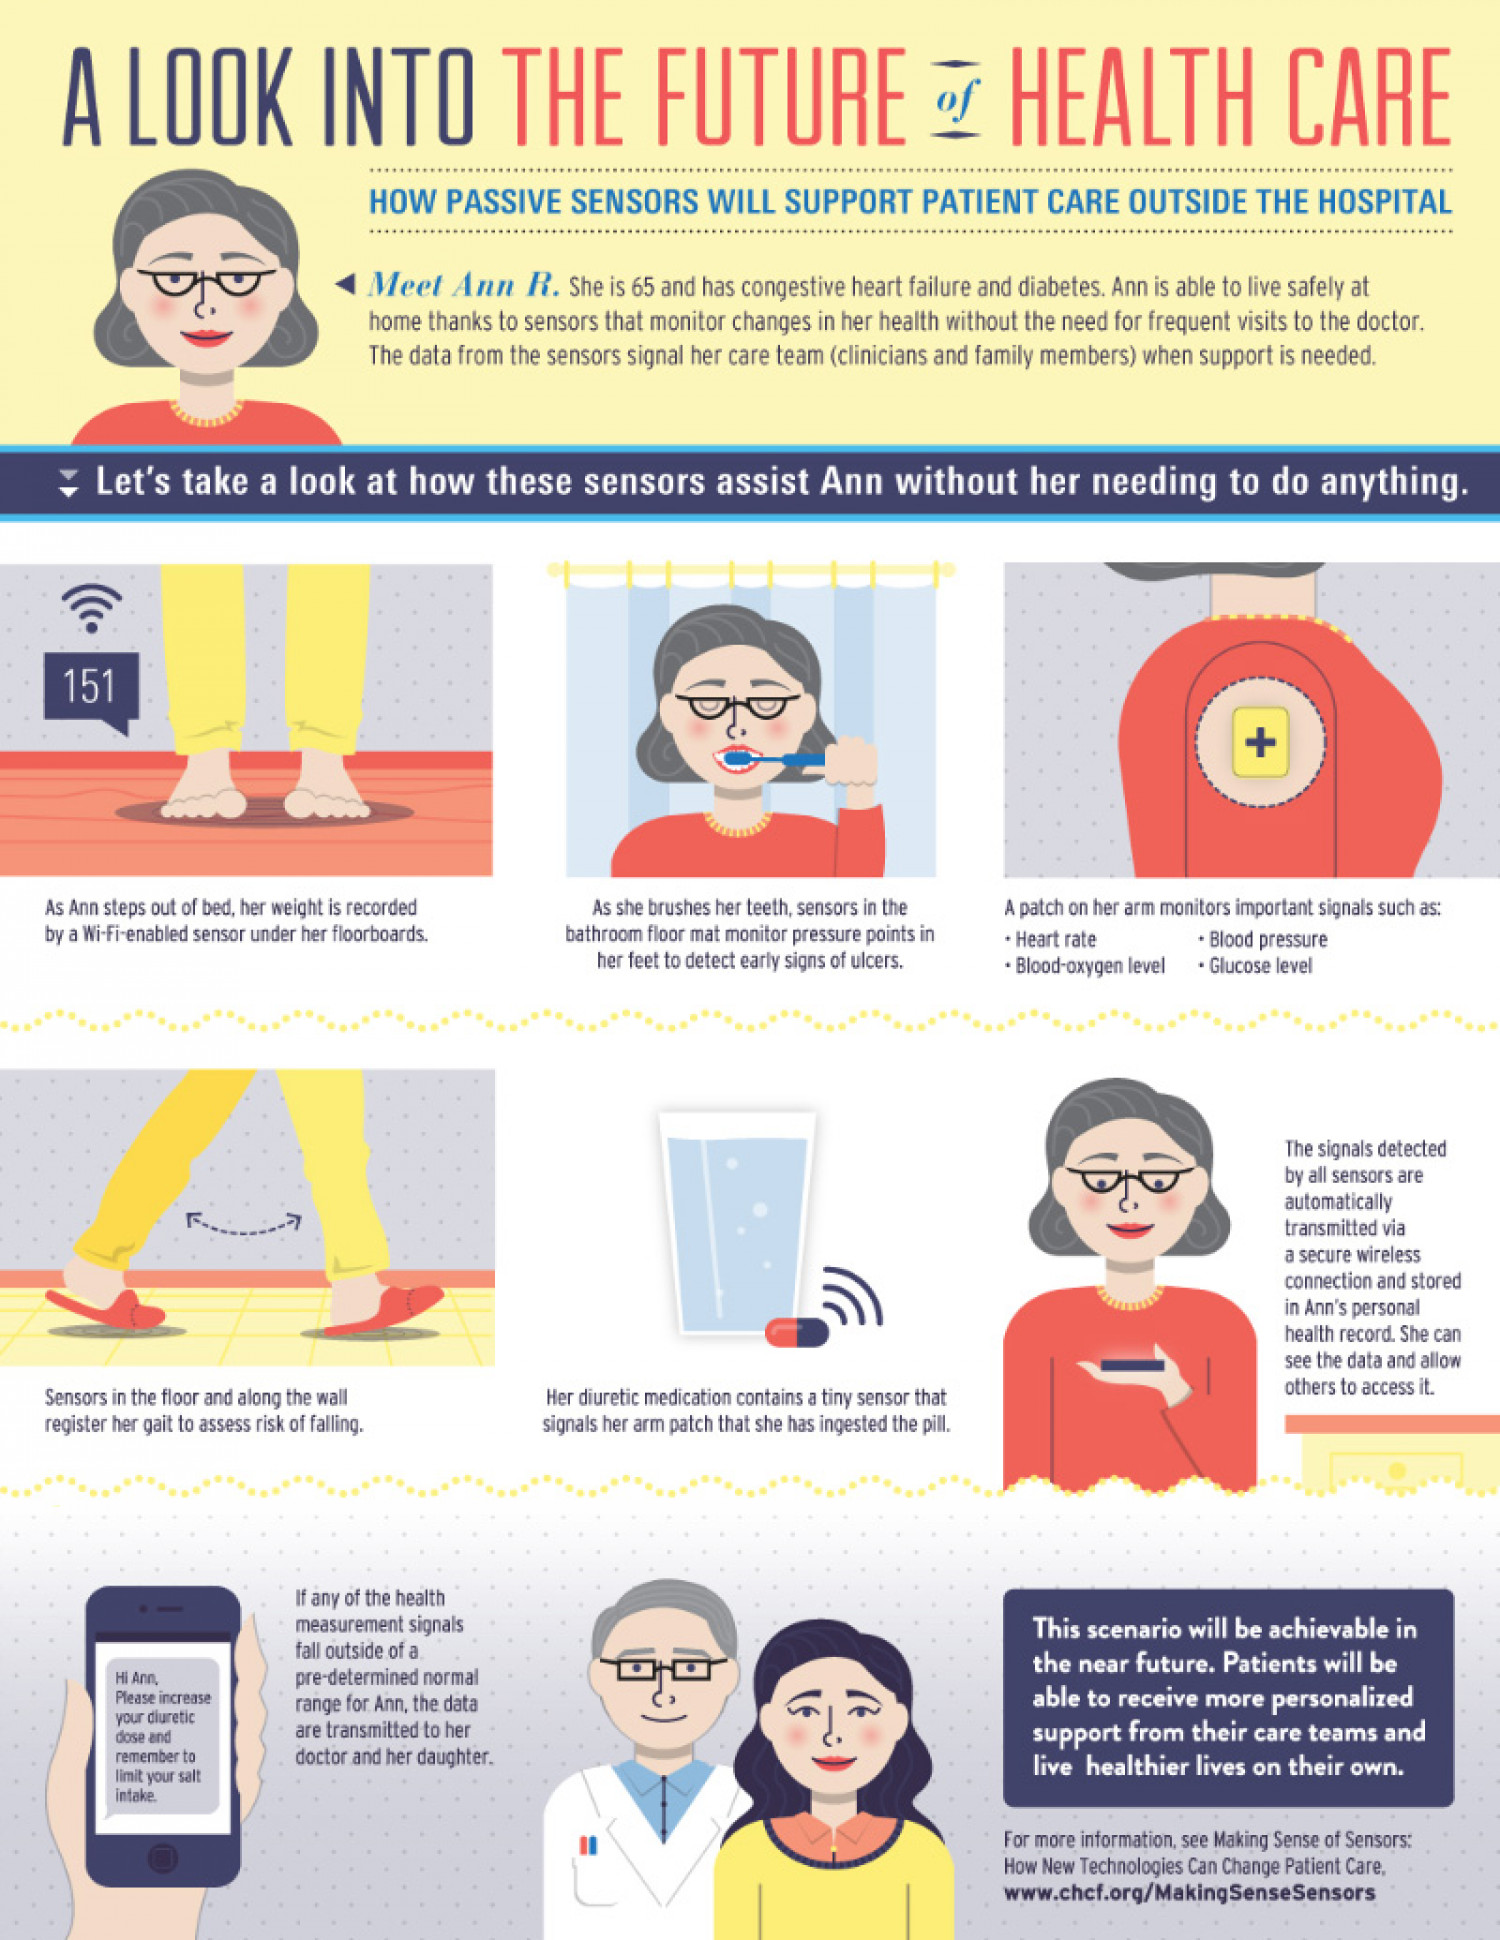 A Look into the Future of Health Care Infographic